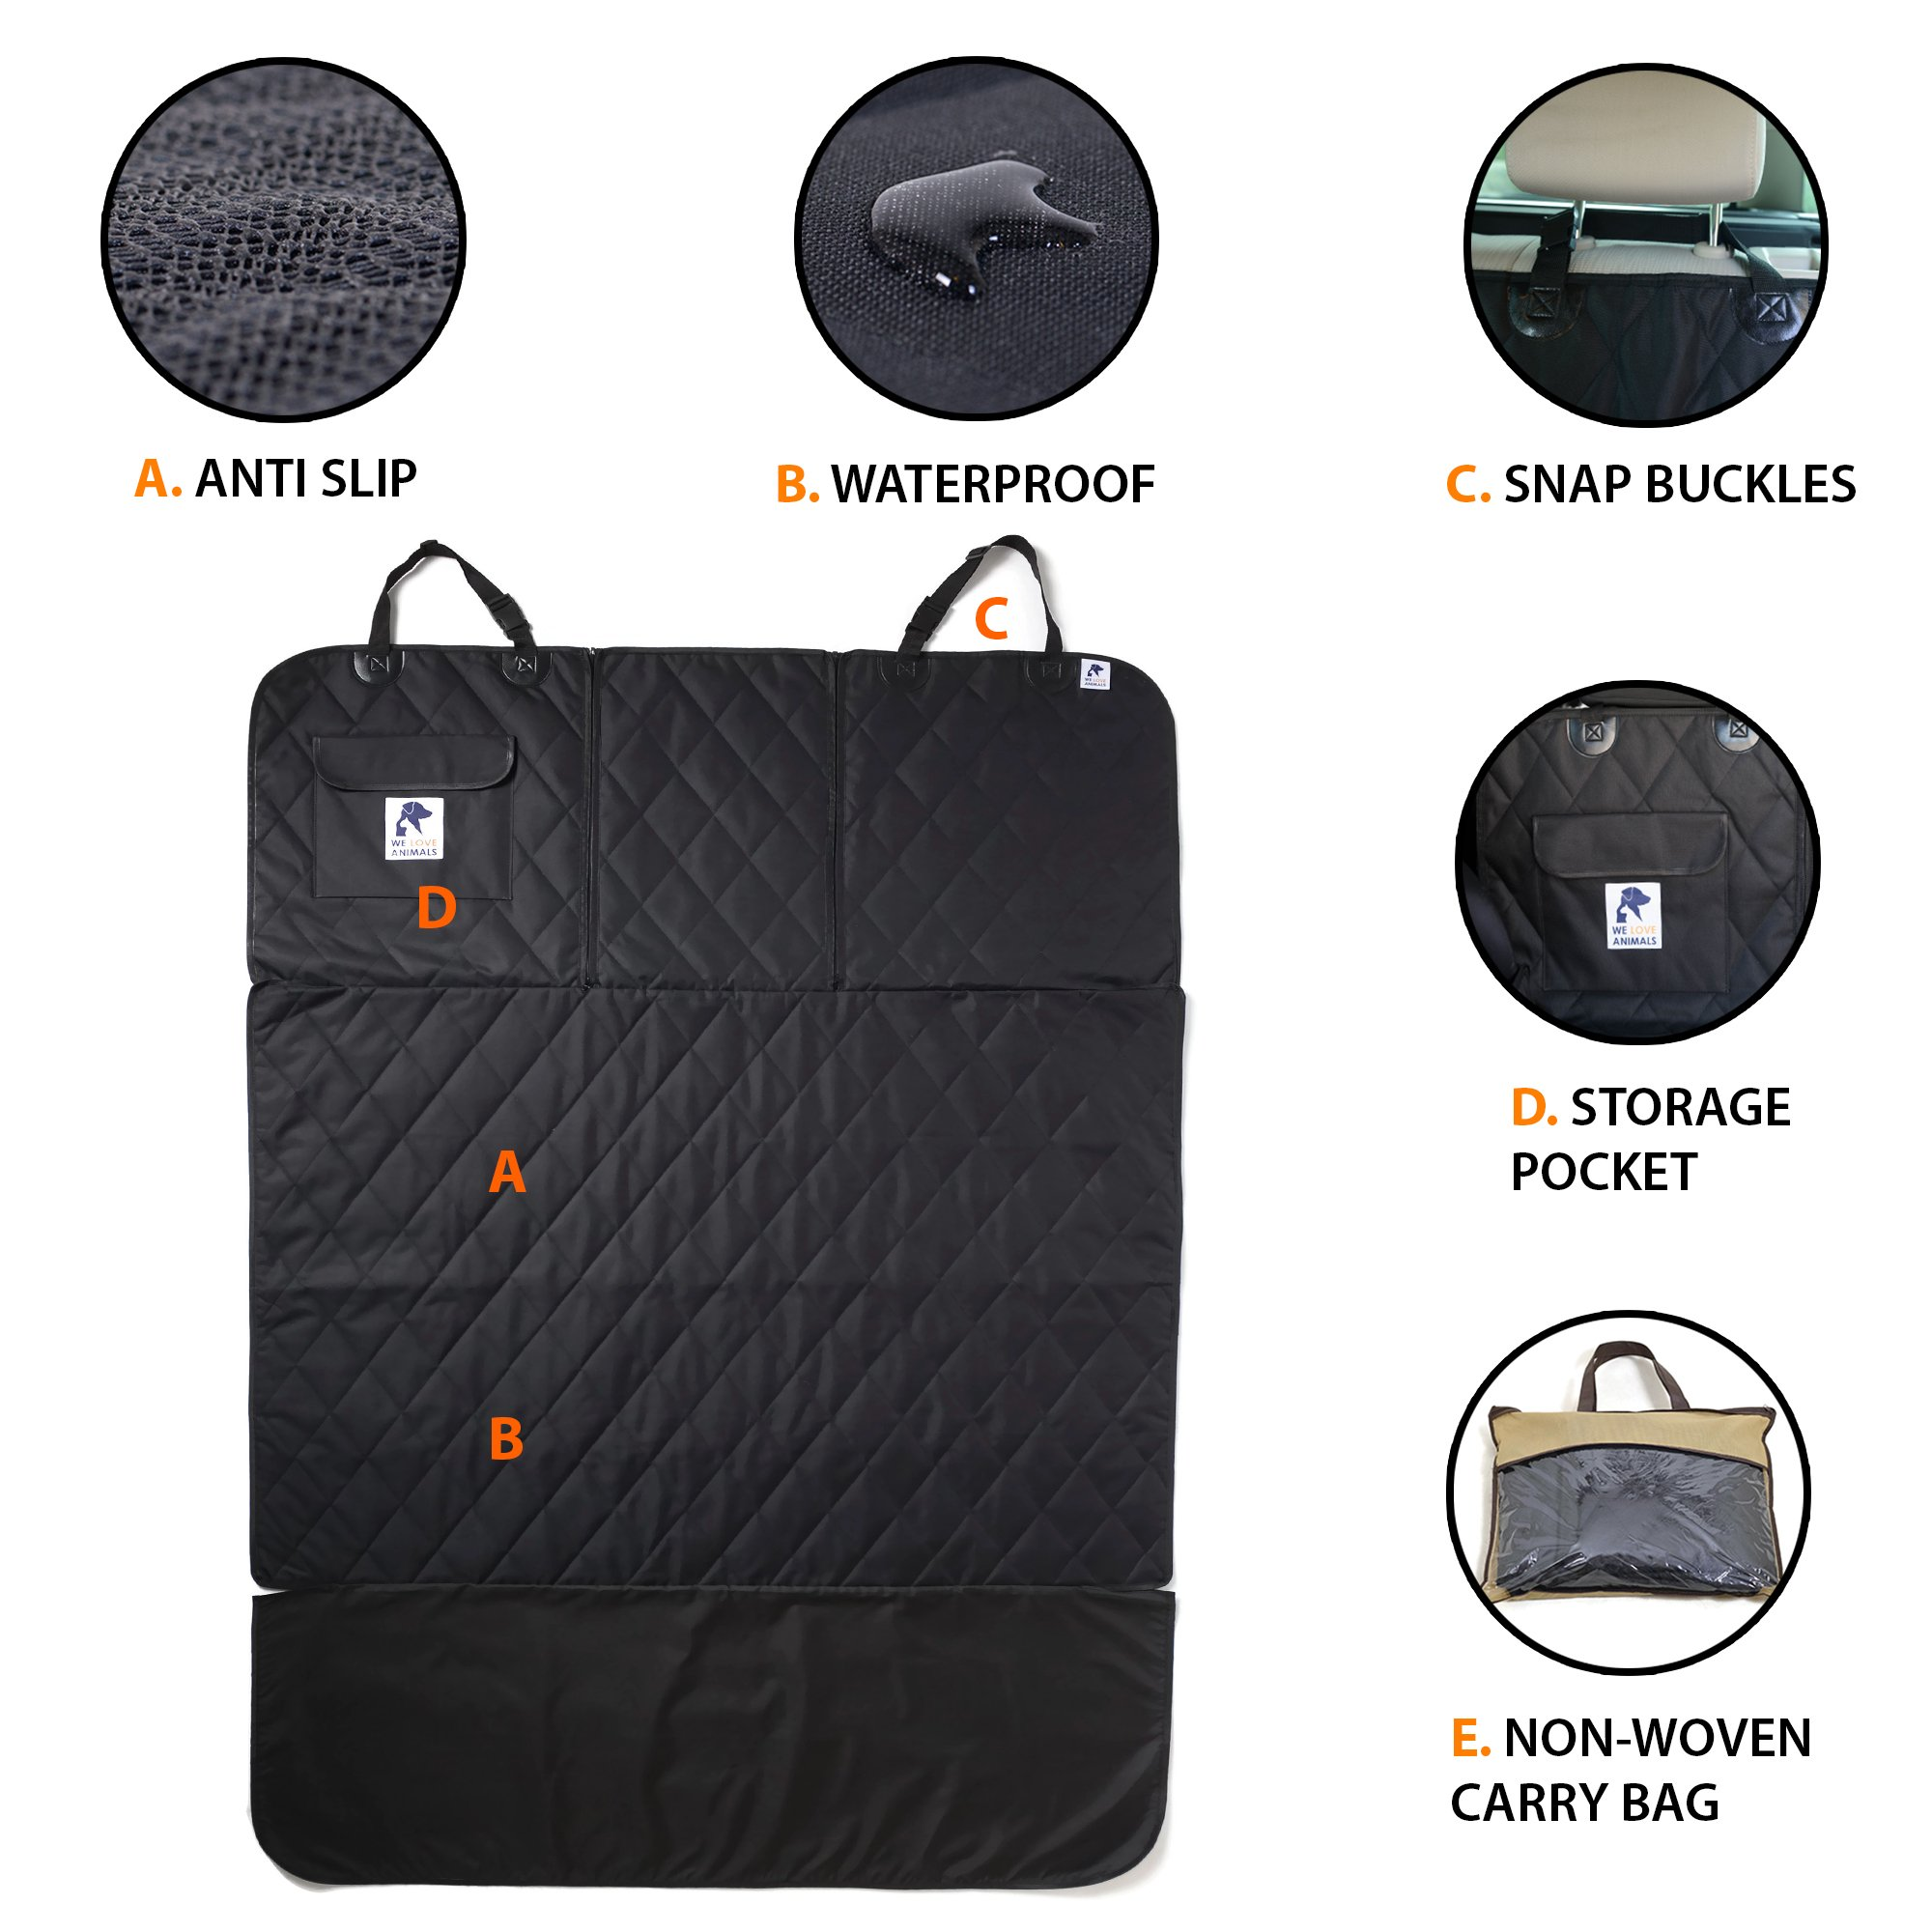 Dog Cargo Liner for SUV, Van, Truck & Jeep - Waterproof, Machine Washable, Nonslip Pet Seat Cover with Bumper Flap will keep your vehicle as clean as ever - XL, Universal Fit - BONUS Carry Bag by WE LOVE ANIMALS (Image #3)